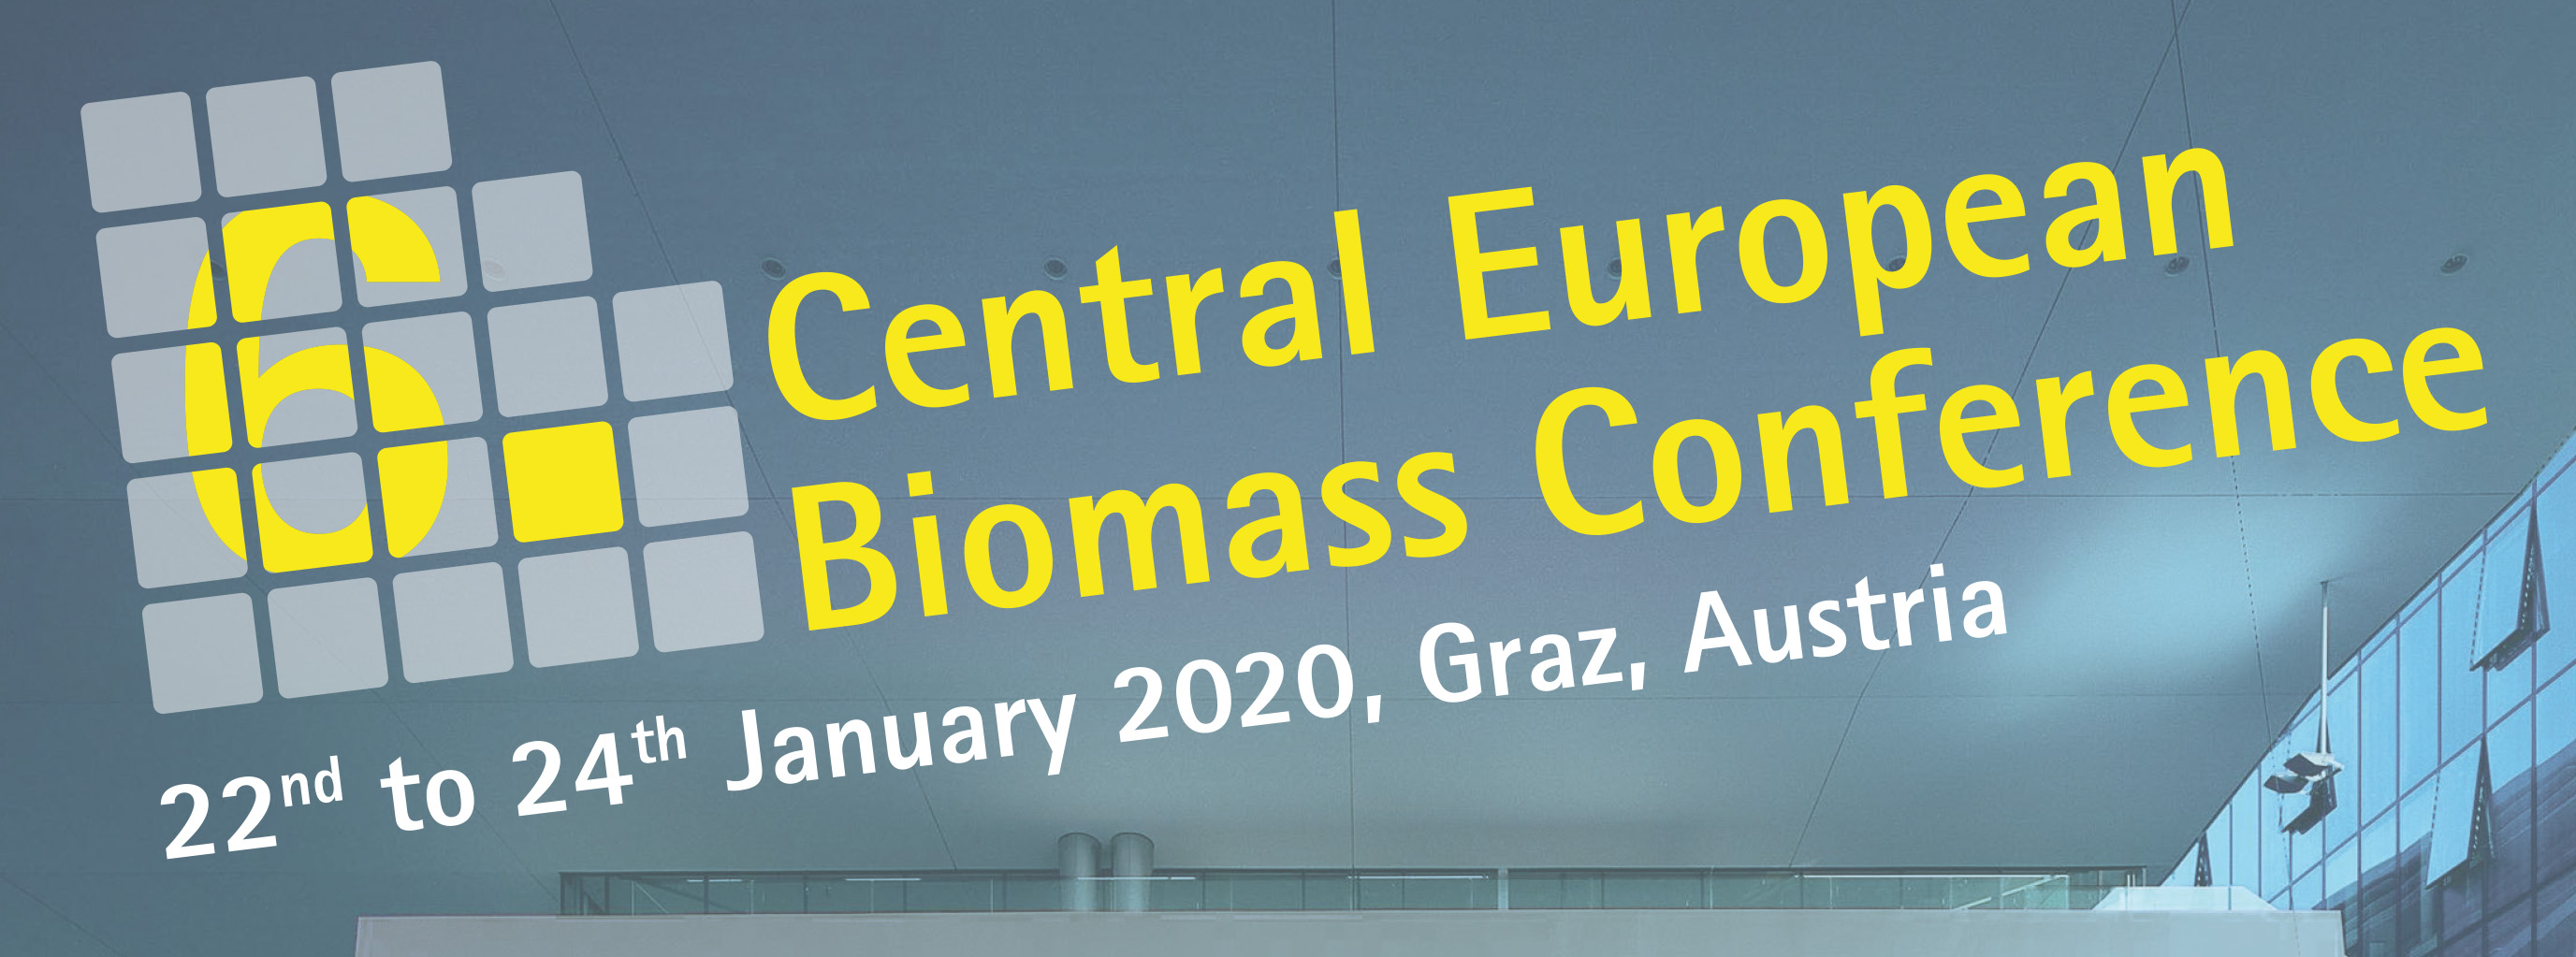 Bioenergy in practice on the 6th Central European Biomass Conference 2020 in Graz!